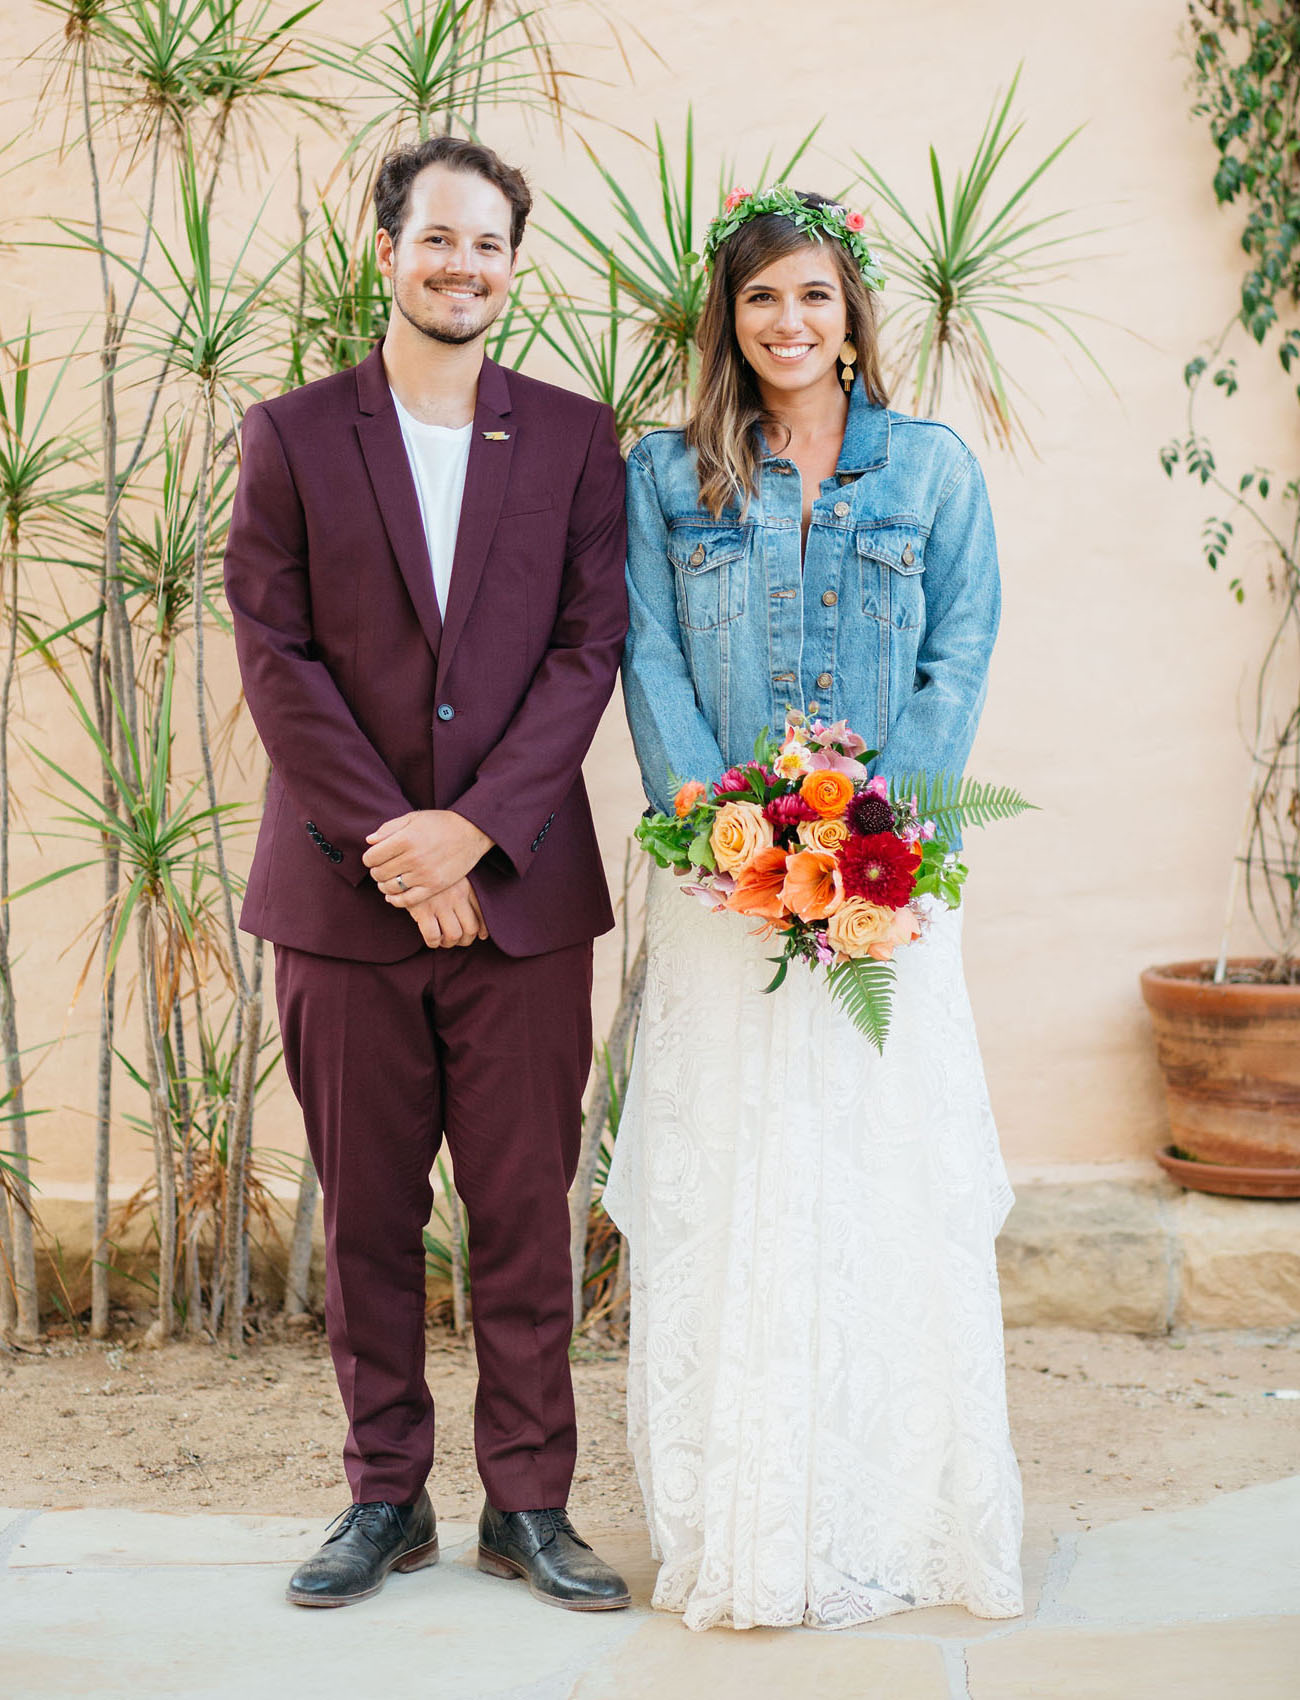 This couple was serious about fun and colors at their wedding, and they put as much of their personalities into the wedding as possible